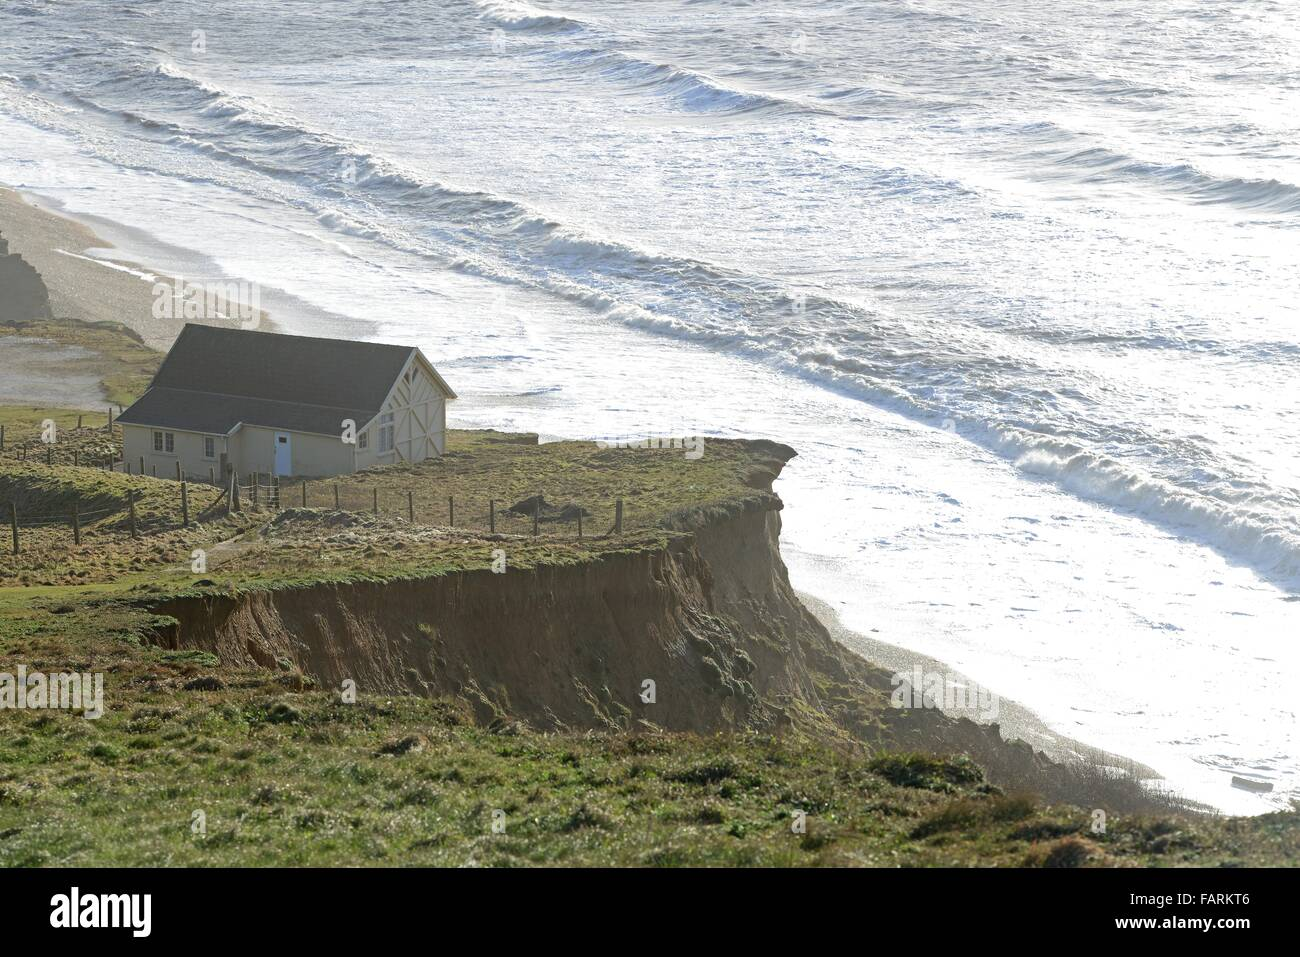 Broadchurch chalet, Briar Cliff beach hut, used as key location of TV series at Eype in Dorset, Britain, UK - Stock Image